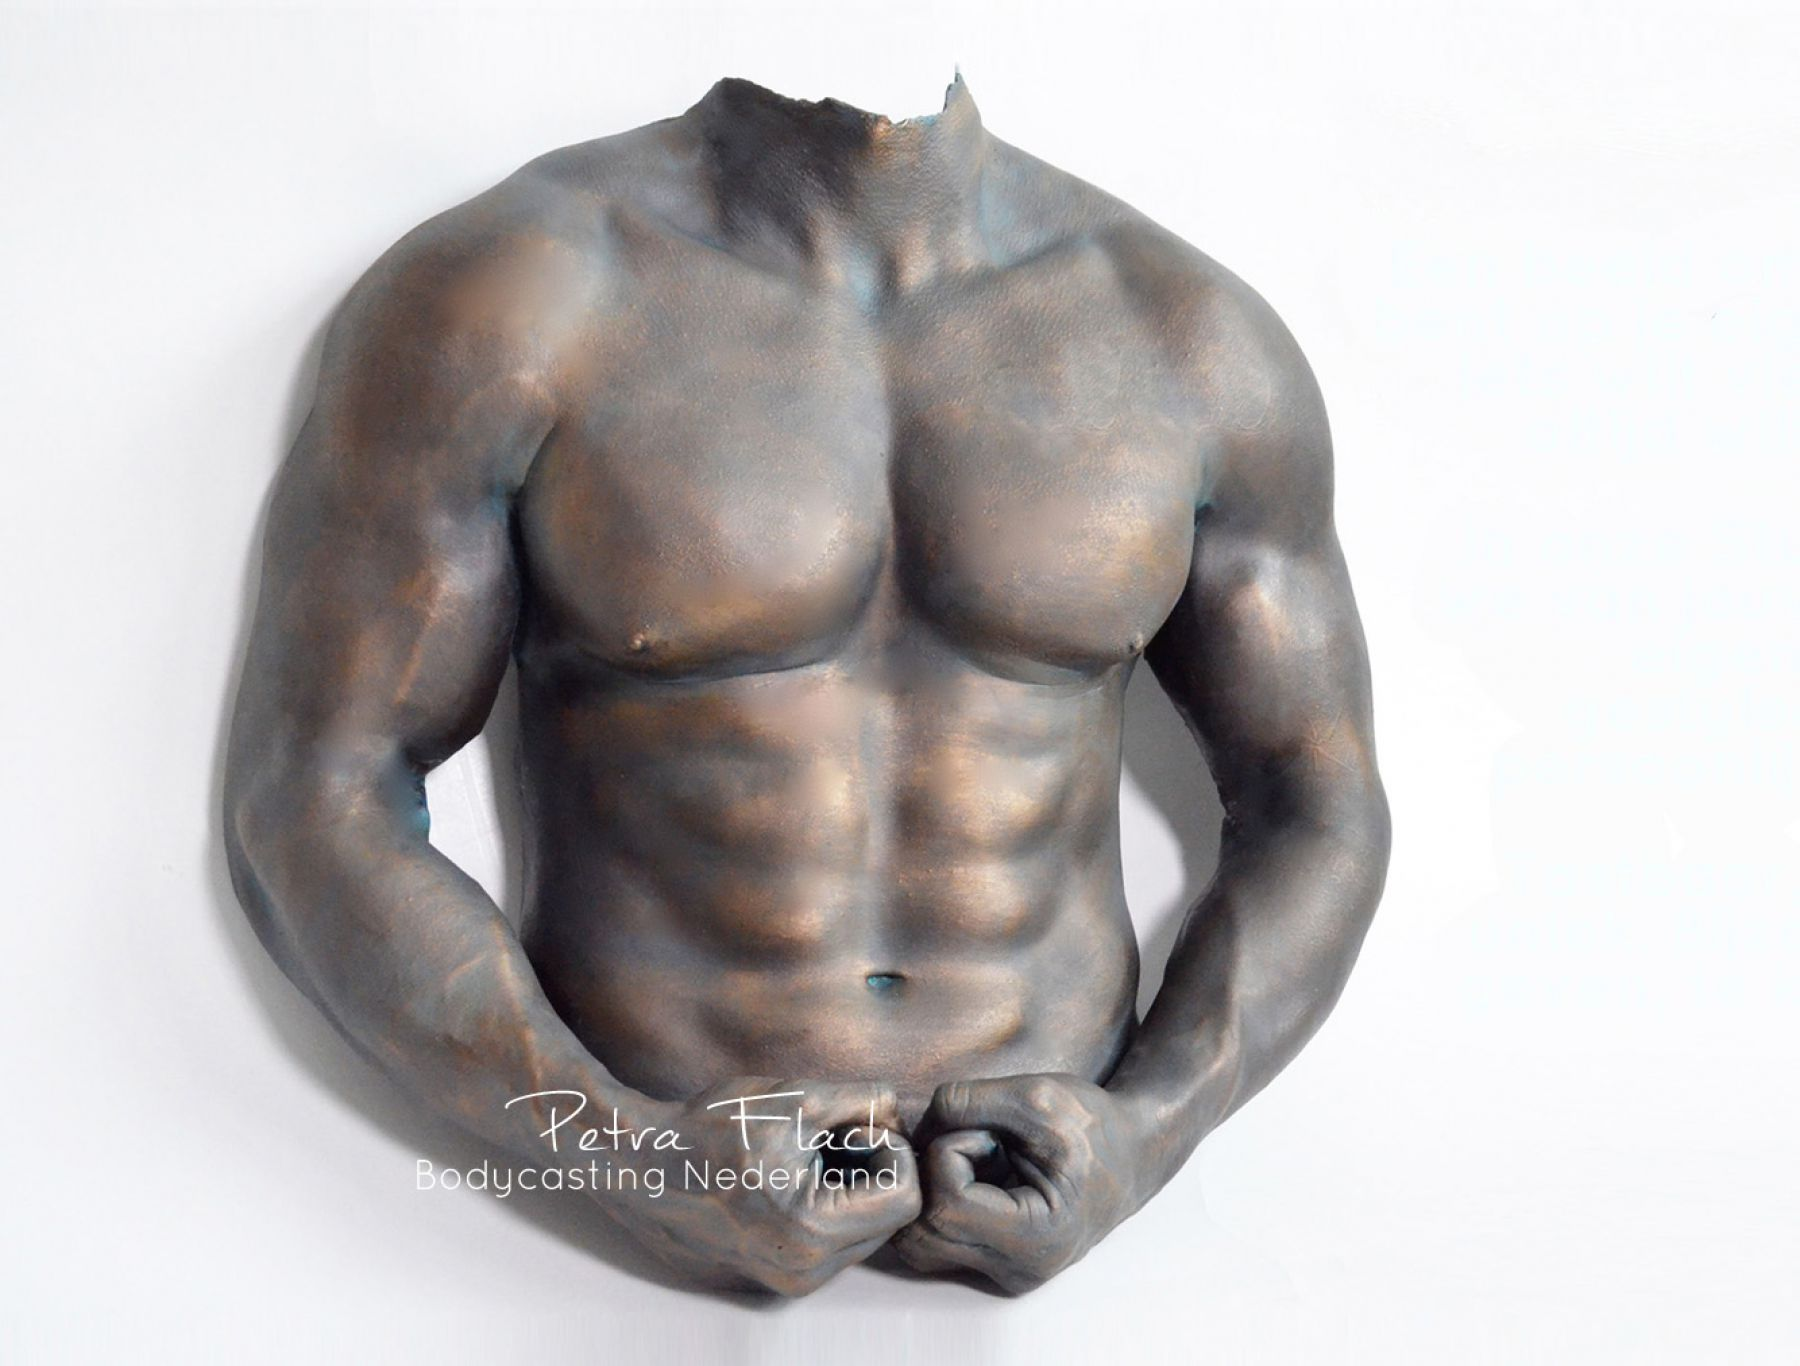 Torso Male, Fitness, Bodycasting, Lifecasting, exclusive, Petra Flach, Art, Kunst, 3D Sculpture.jpg